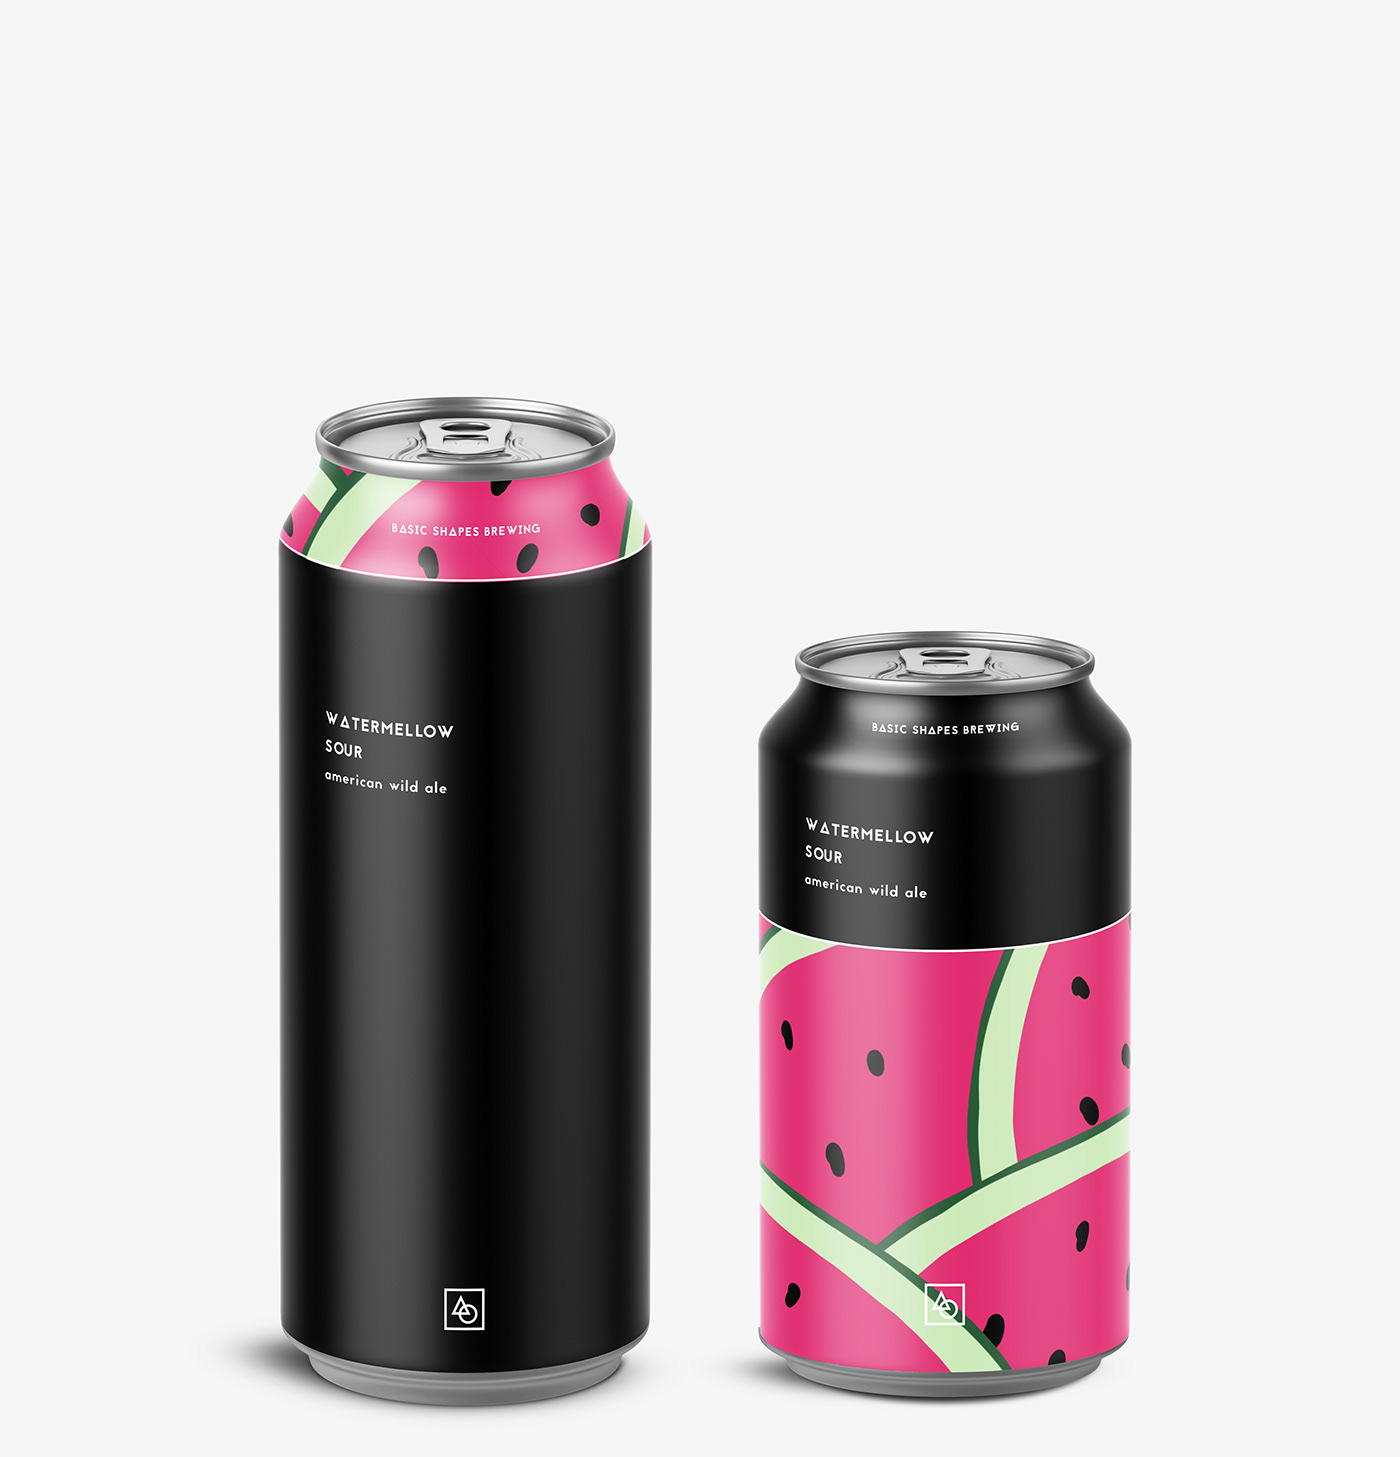 Beer Can Design Illustrations and Mockups on Behance